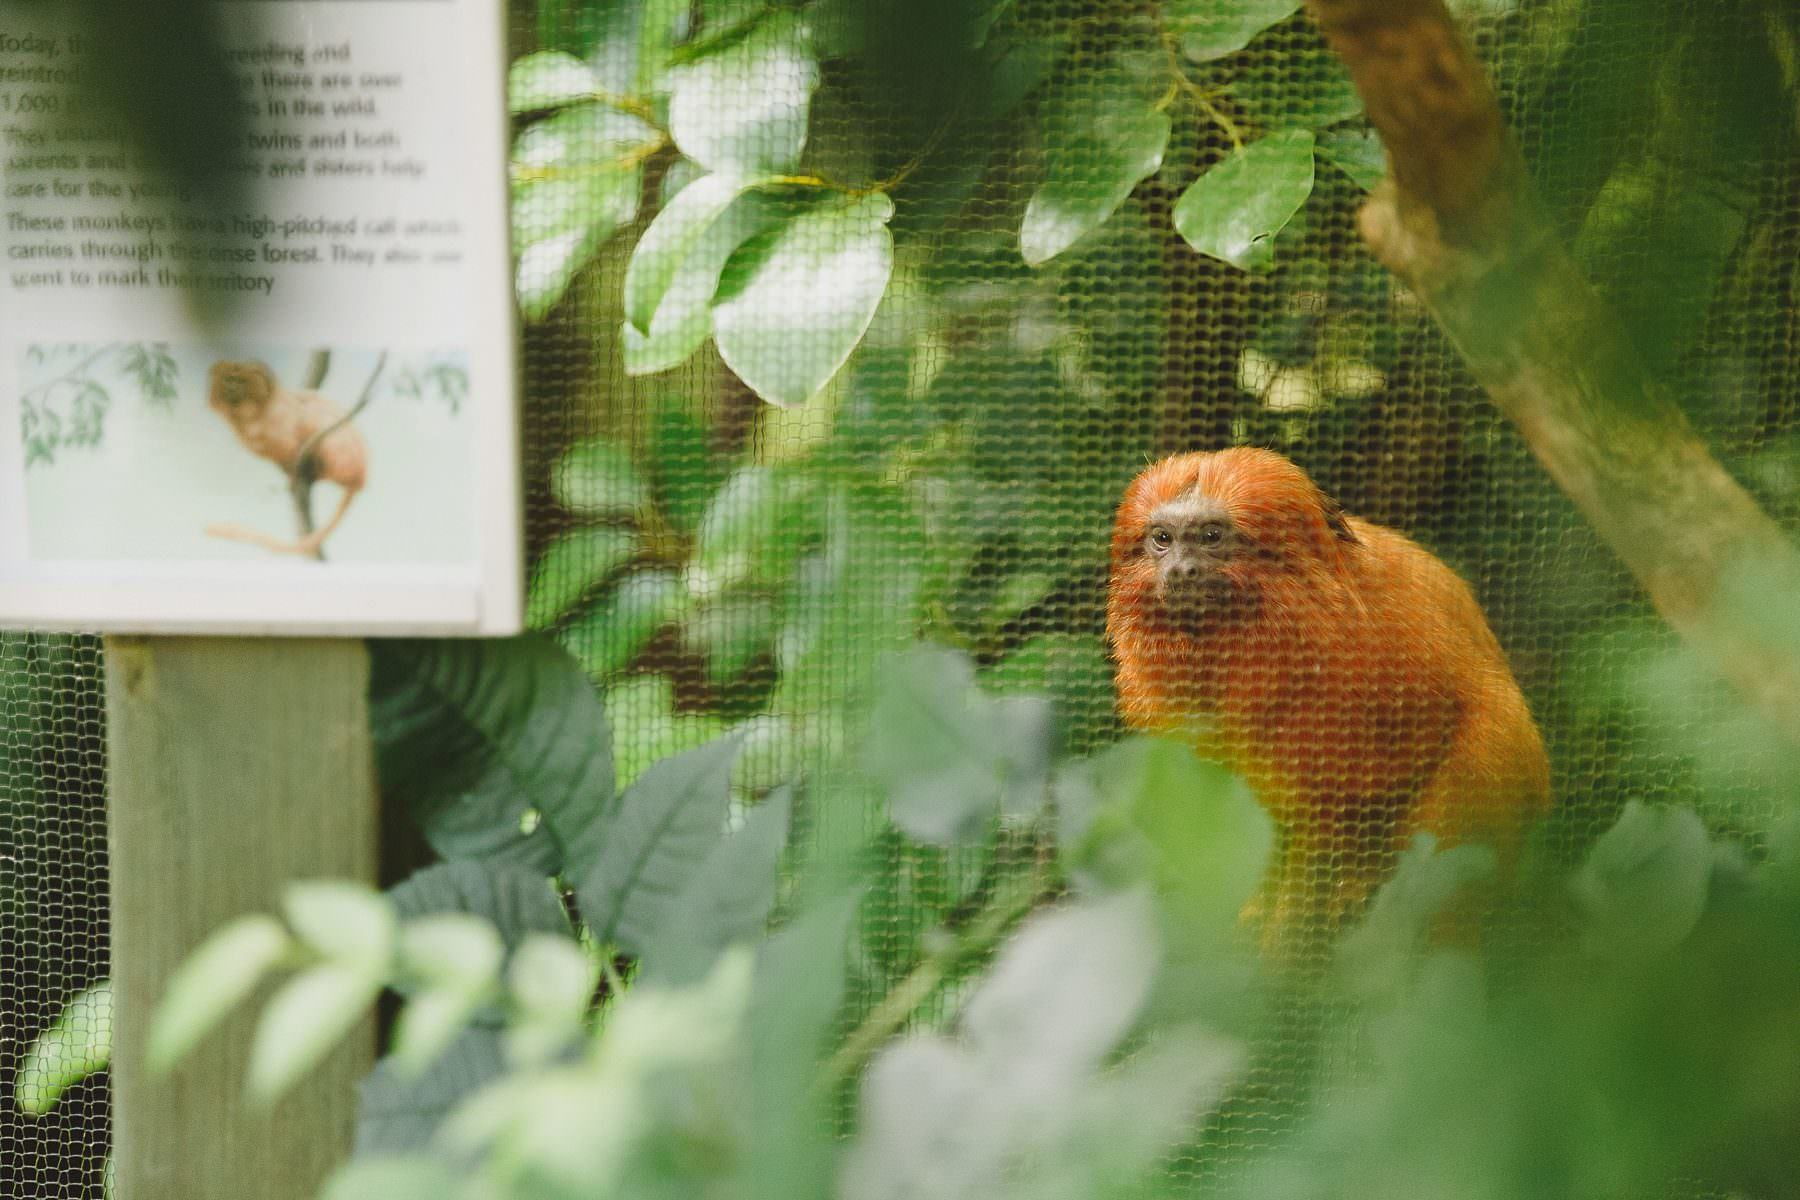 weddings-at-bristol-zoo-009